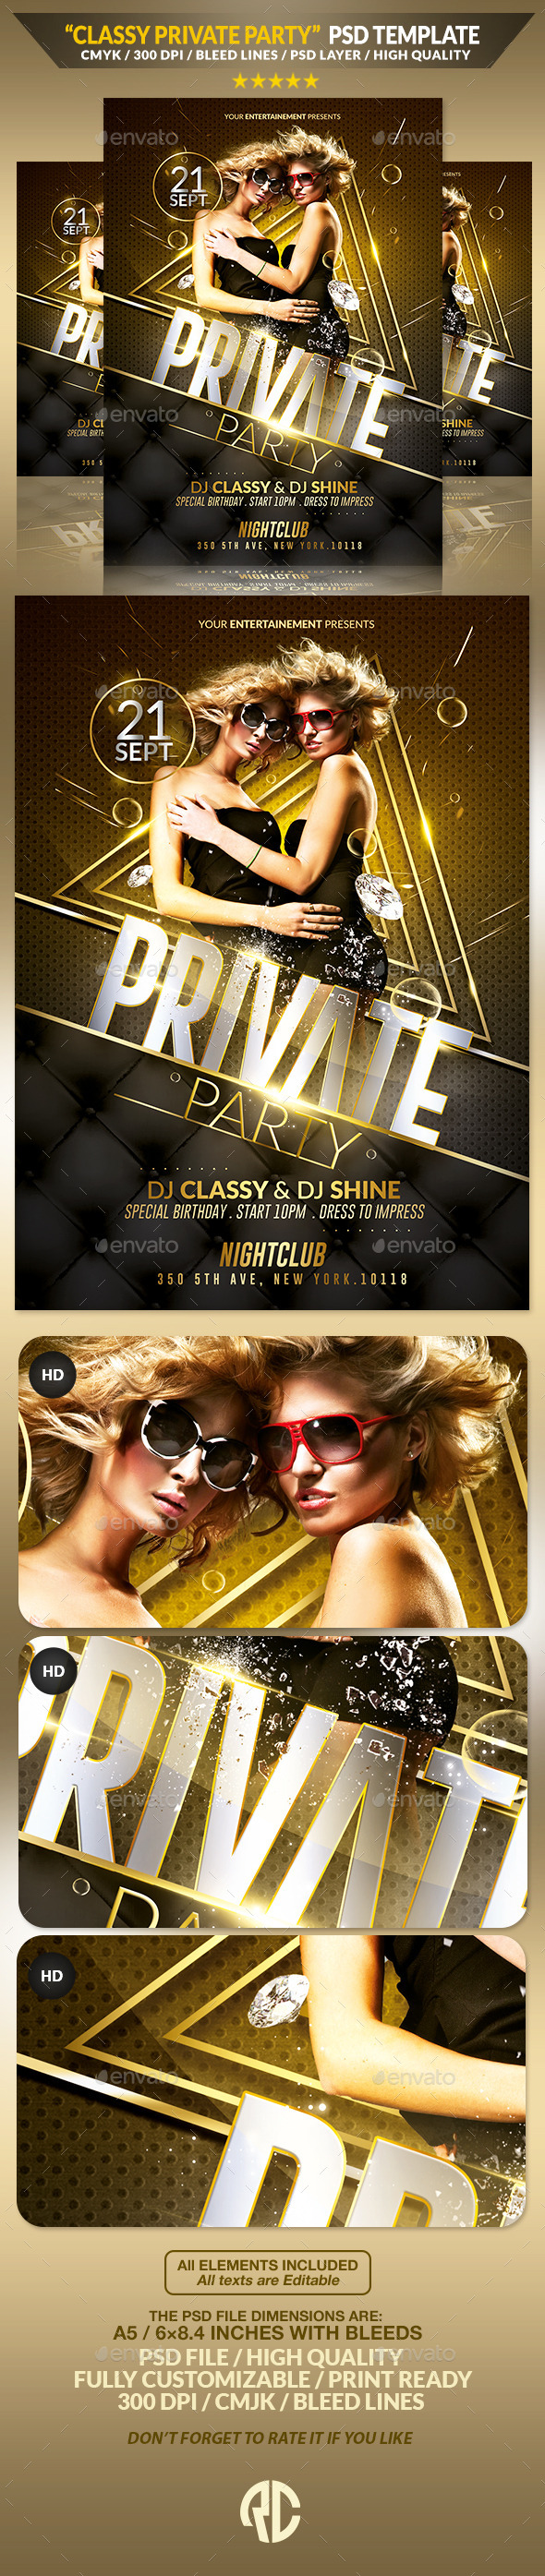 Luxury Private Party | Flyer Template - Events Flyers